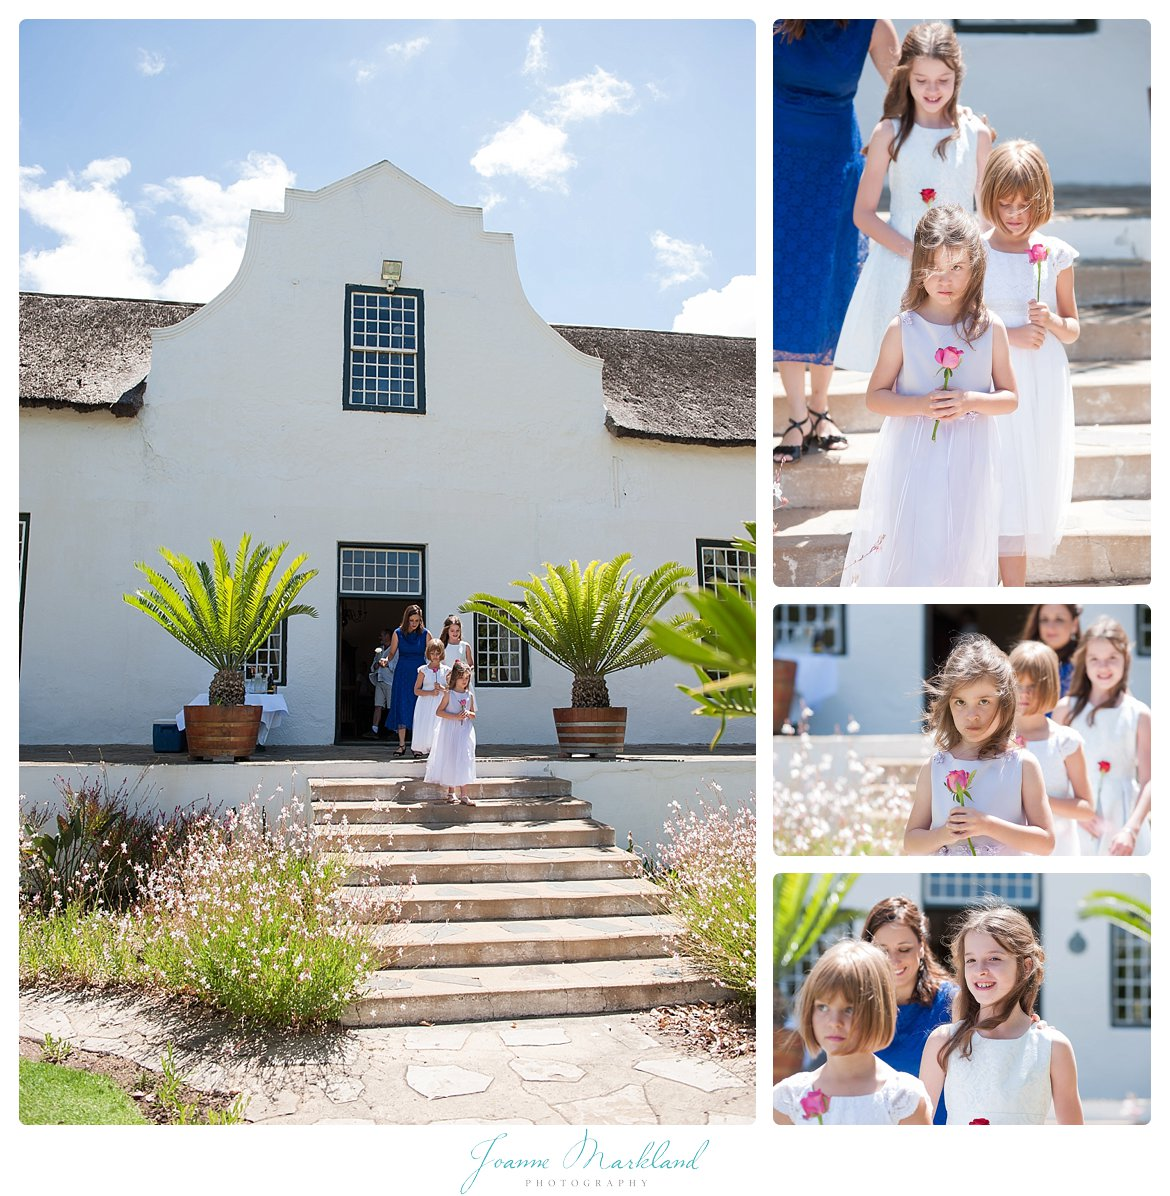 Grootepost-wedding-photography-joanne-markland-011